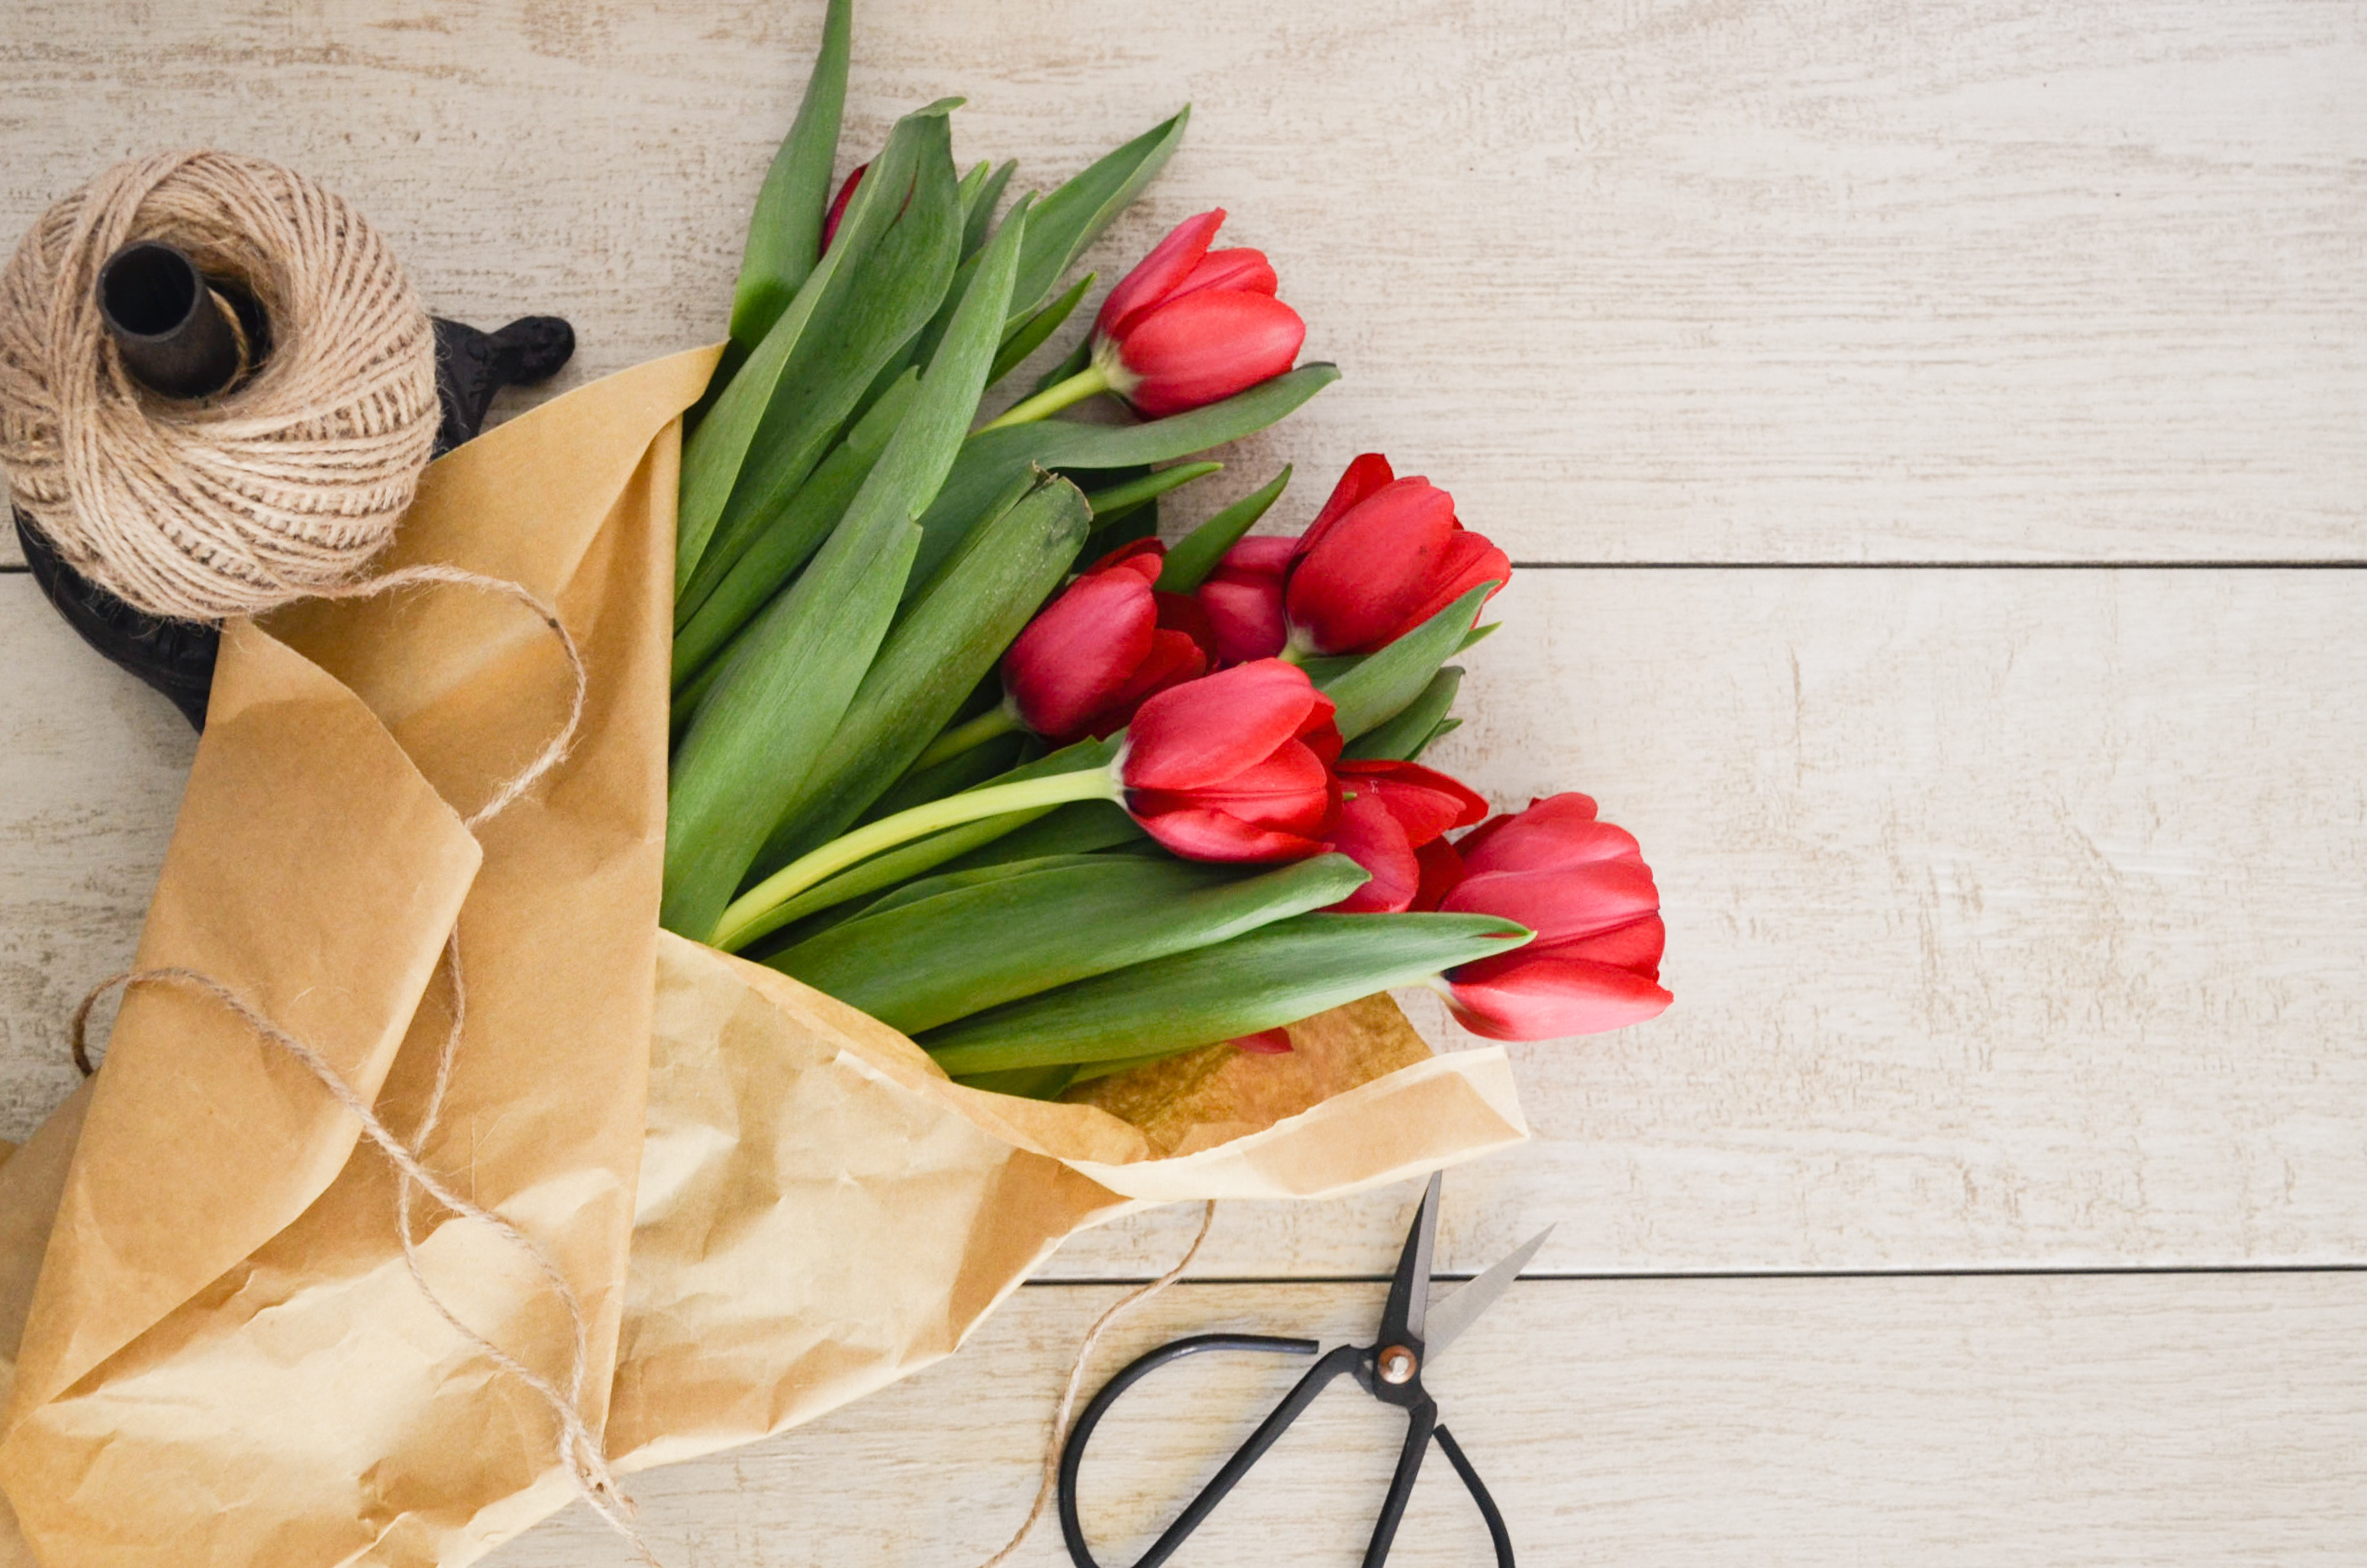 Find the perfect gift for her this Valentine's Day